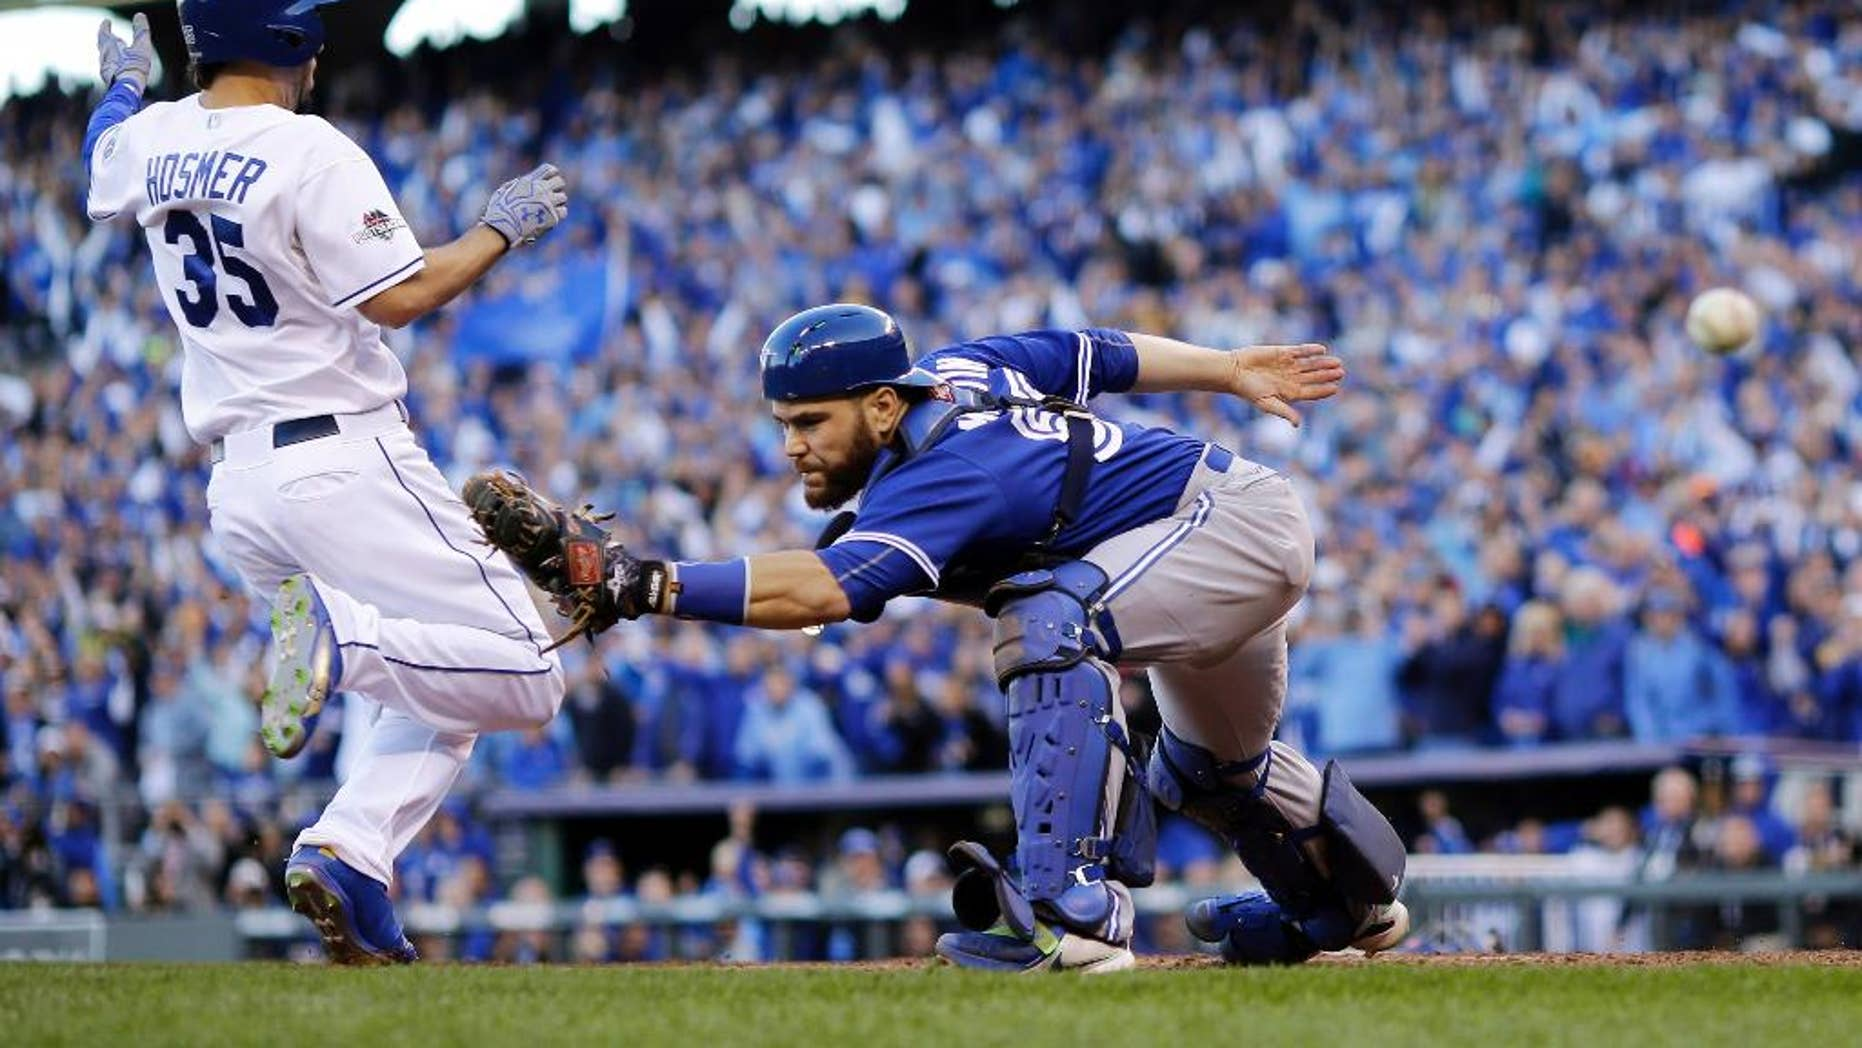 Toronto Blue Jays catcher Russell Martin misses the throw to home plate as Kansas City Royals' Eric Hosmer, right, comes in to score during the seventh inning in Game 2 of baseball's American League Championship Series, Saturday, Oct. 17, 2015, in Kansas City, Mo.  (AP Photo/Matt Slocum)